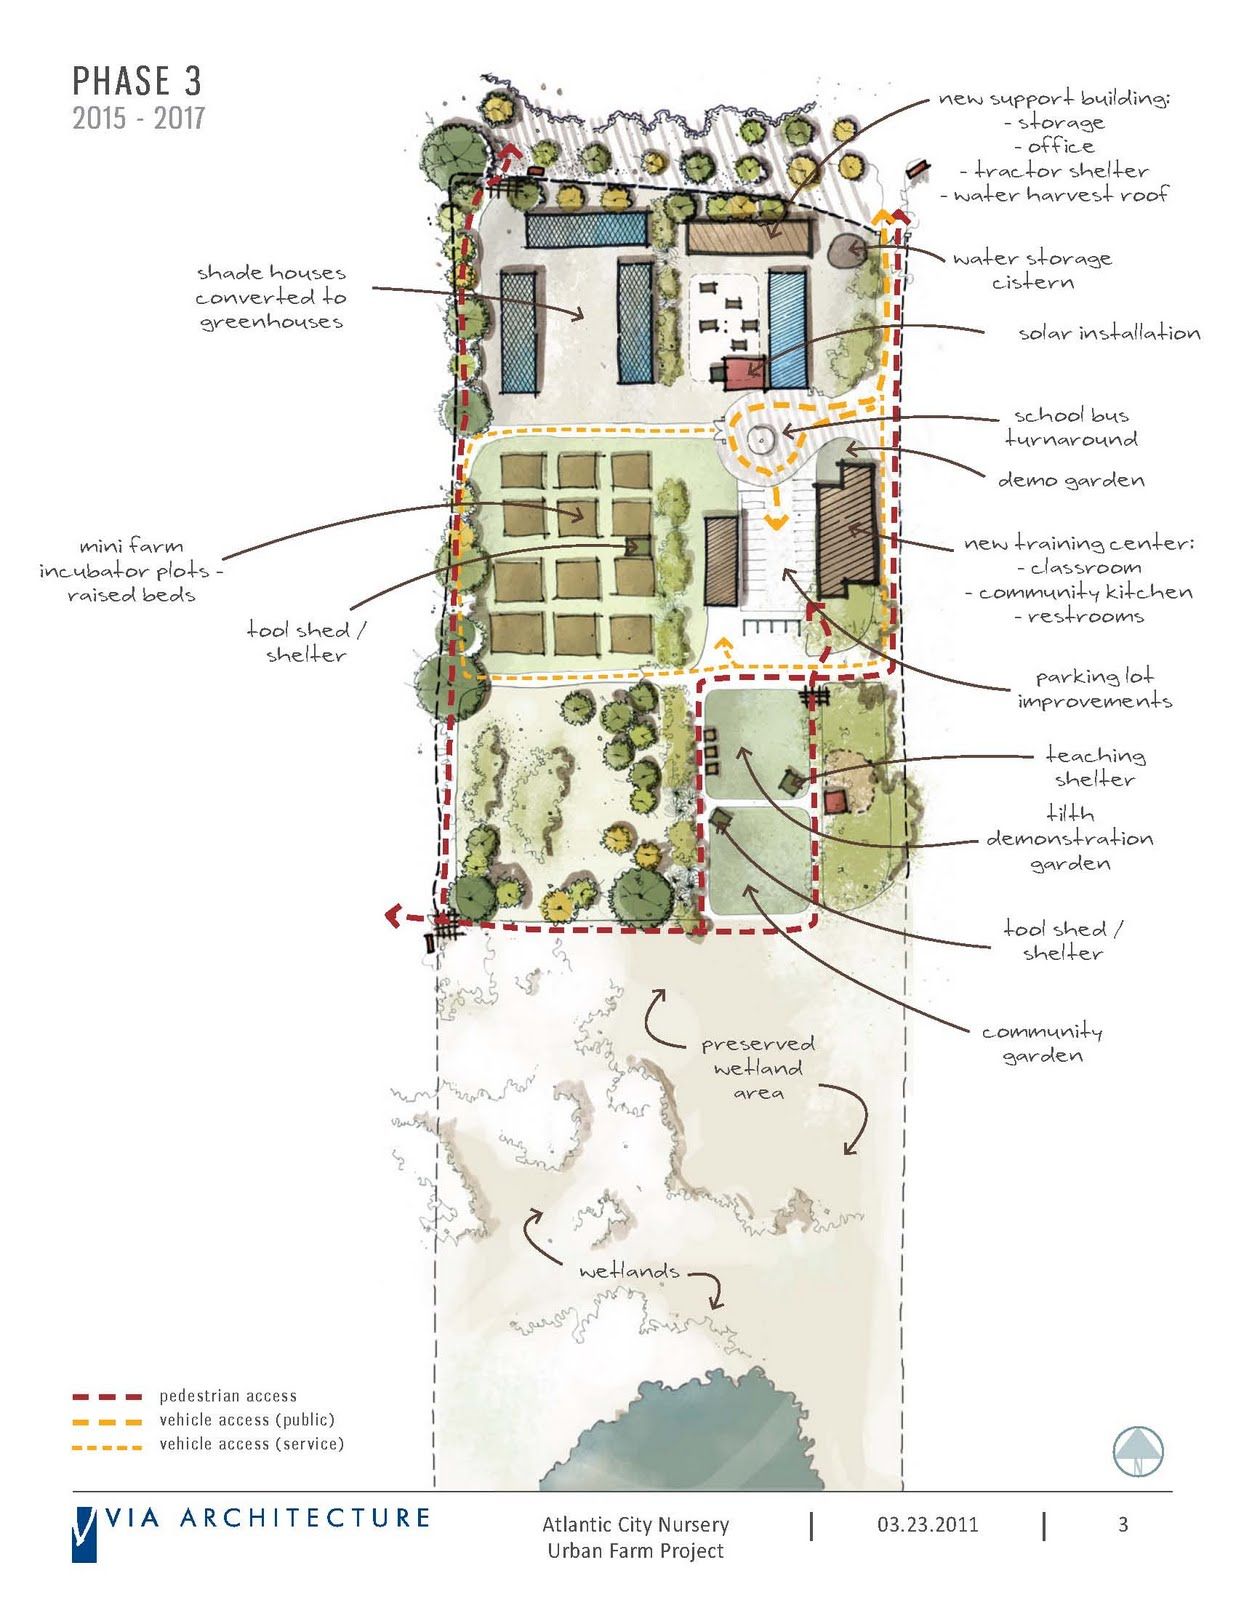 Announcing Our New Community Design Studio: 1 acre farm layout